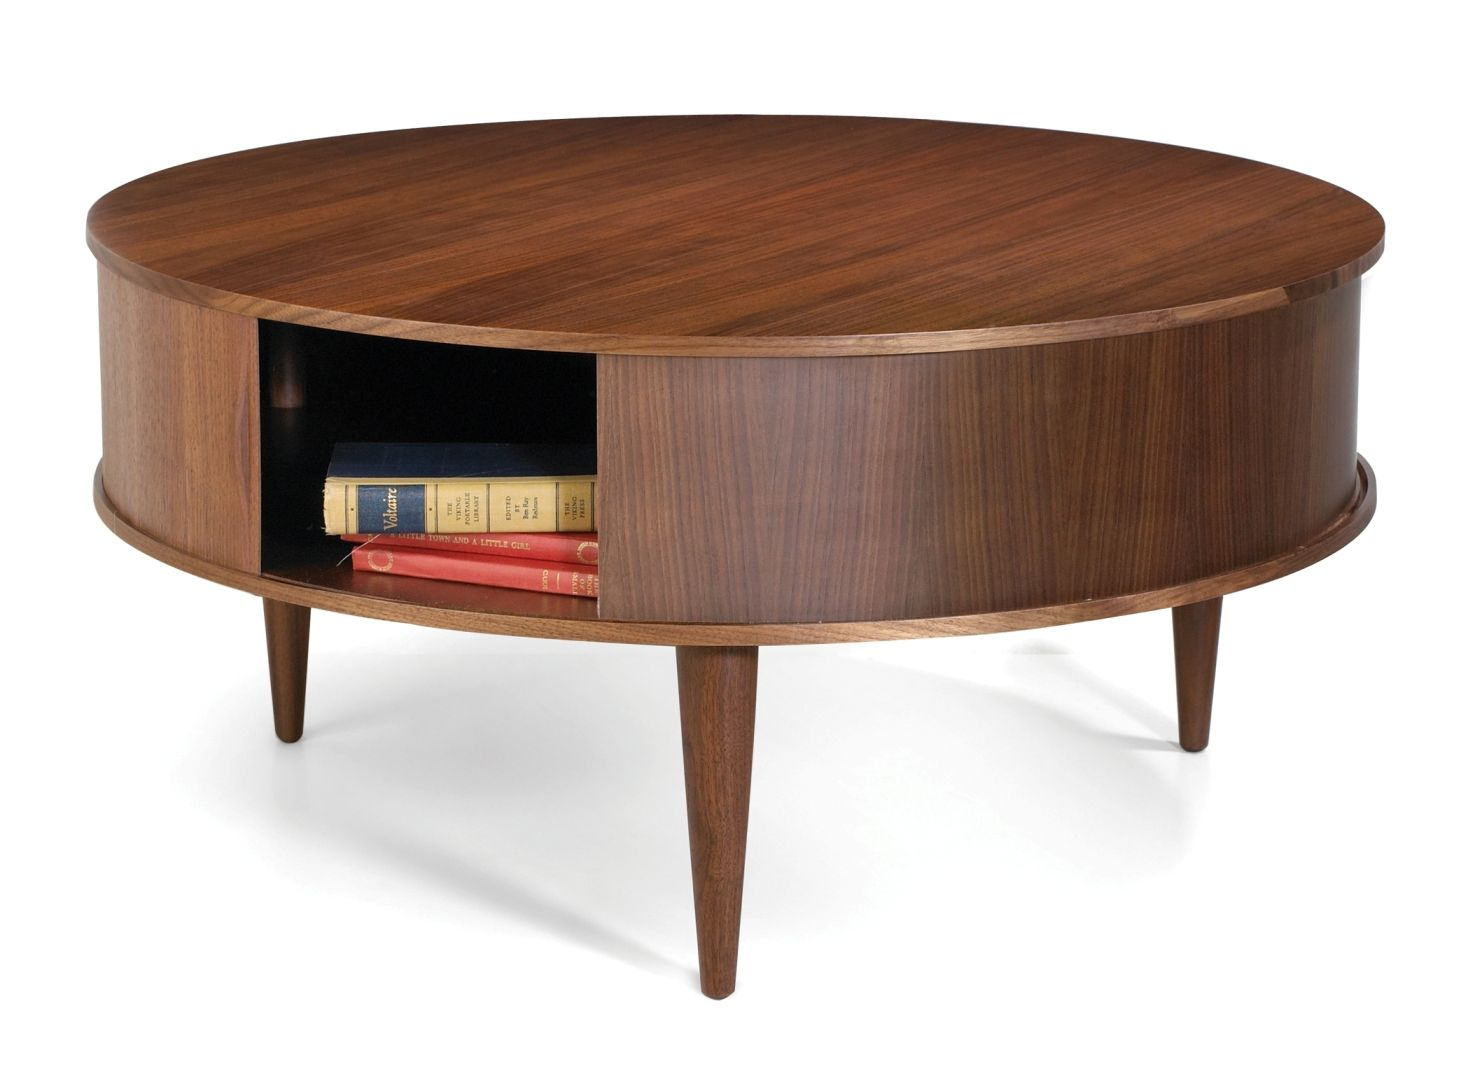 Large Round Coffee Table With Storage Round Wooden Coffee Table